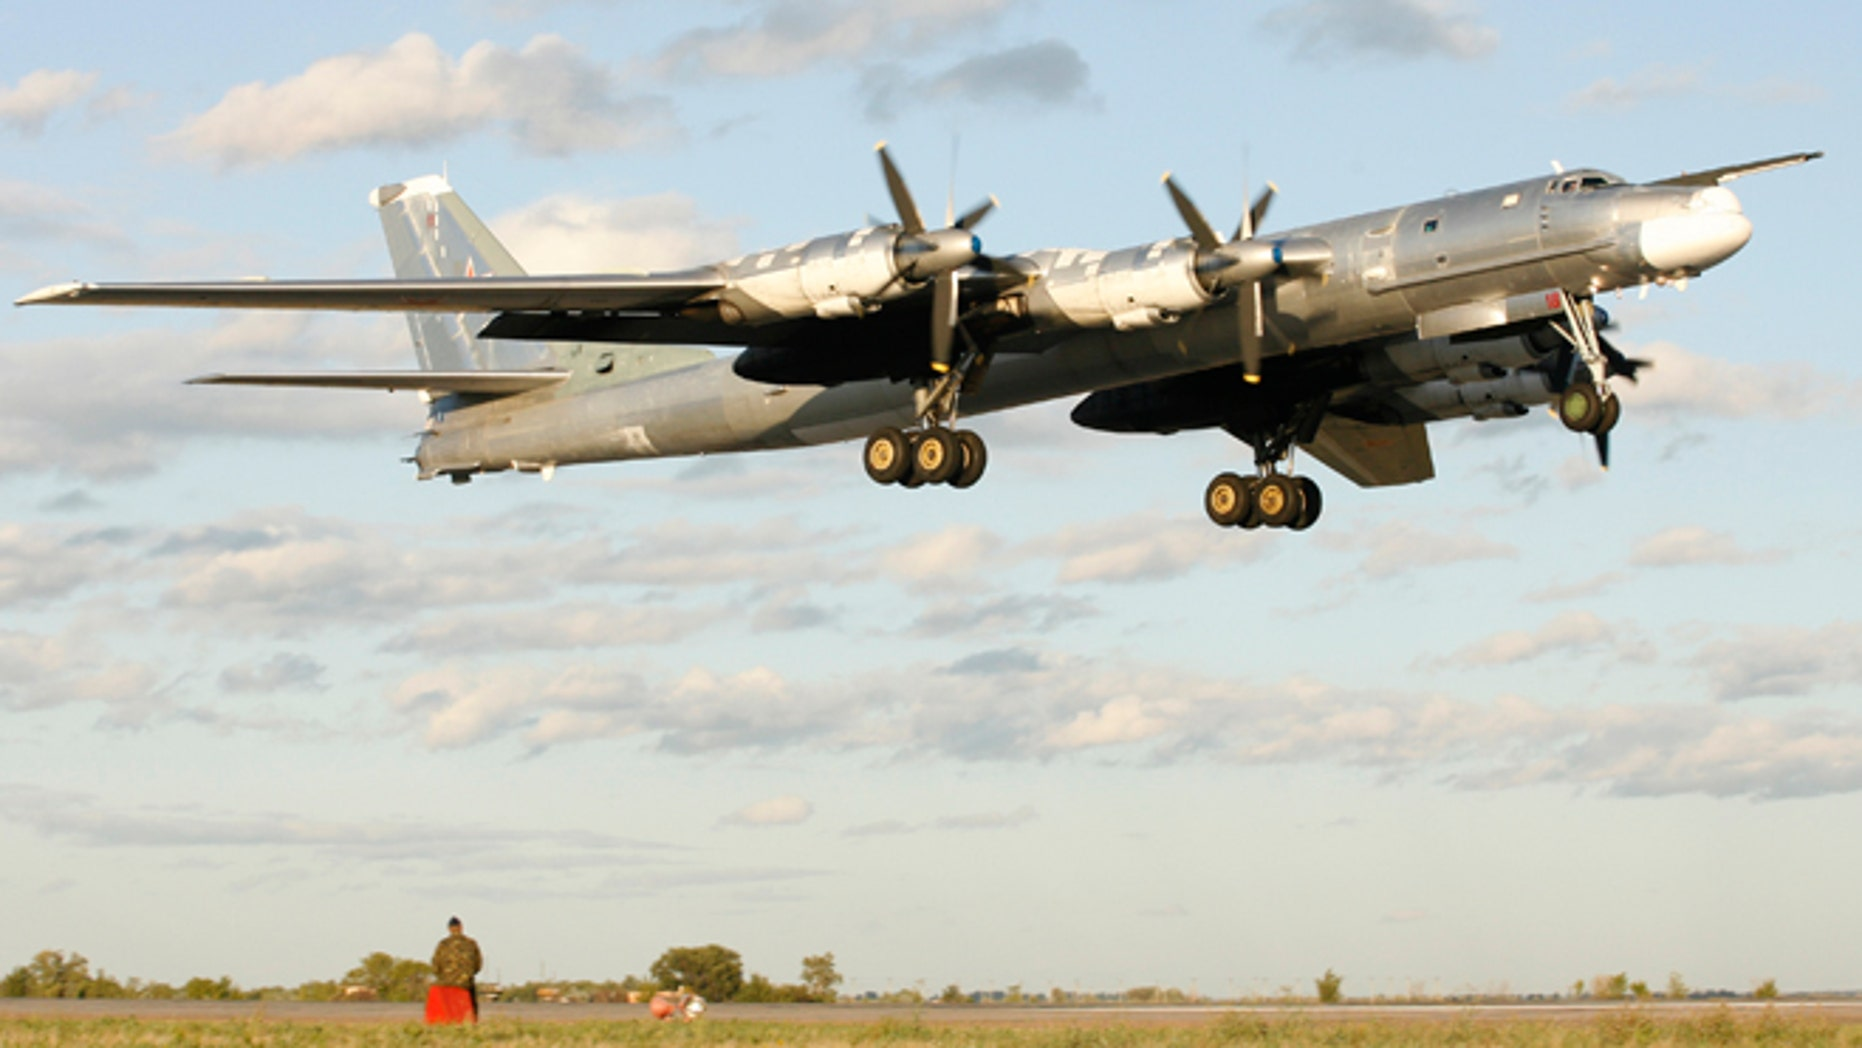 In this August 7, 2008 photo, a Russian TU-95 bomber, or Bear, lands at a military airbase in Engels, some 559 miles south of Moscow.